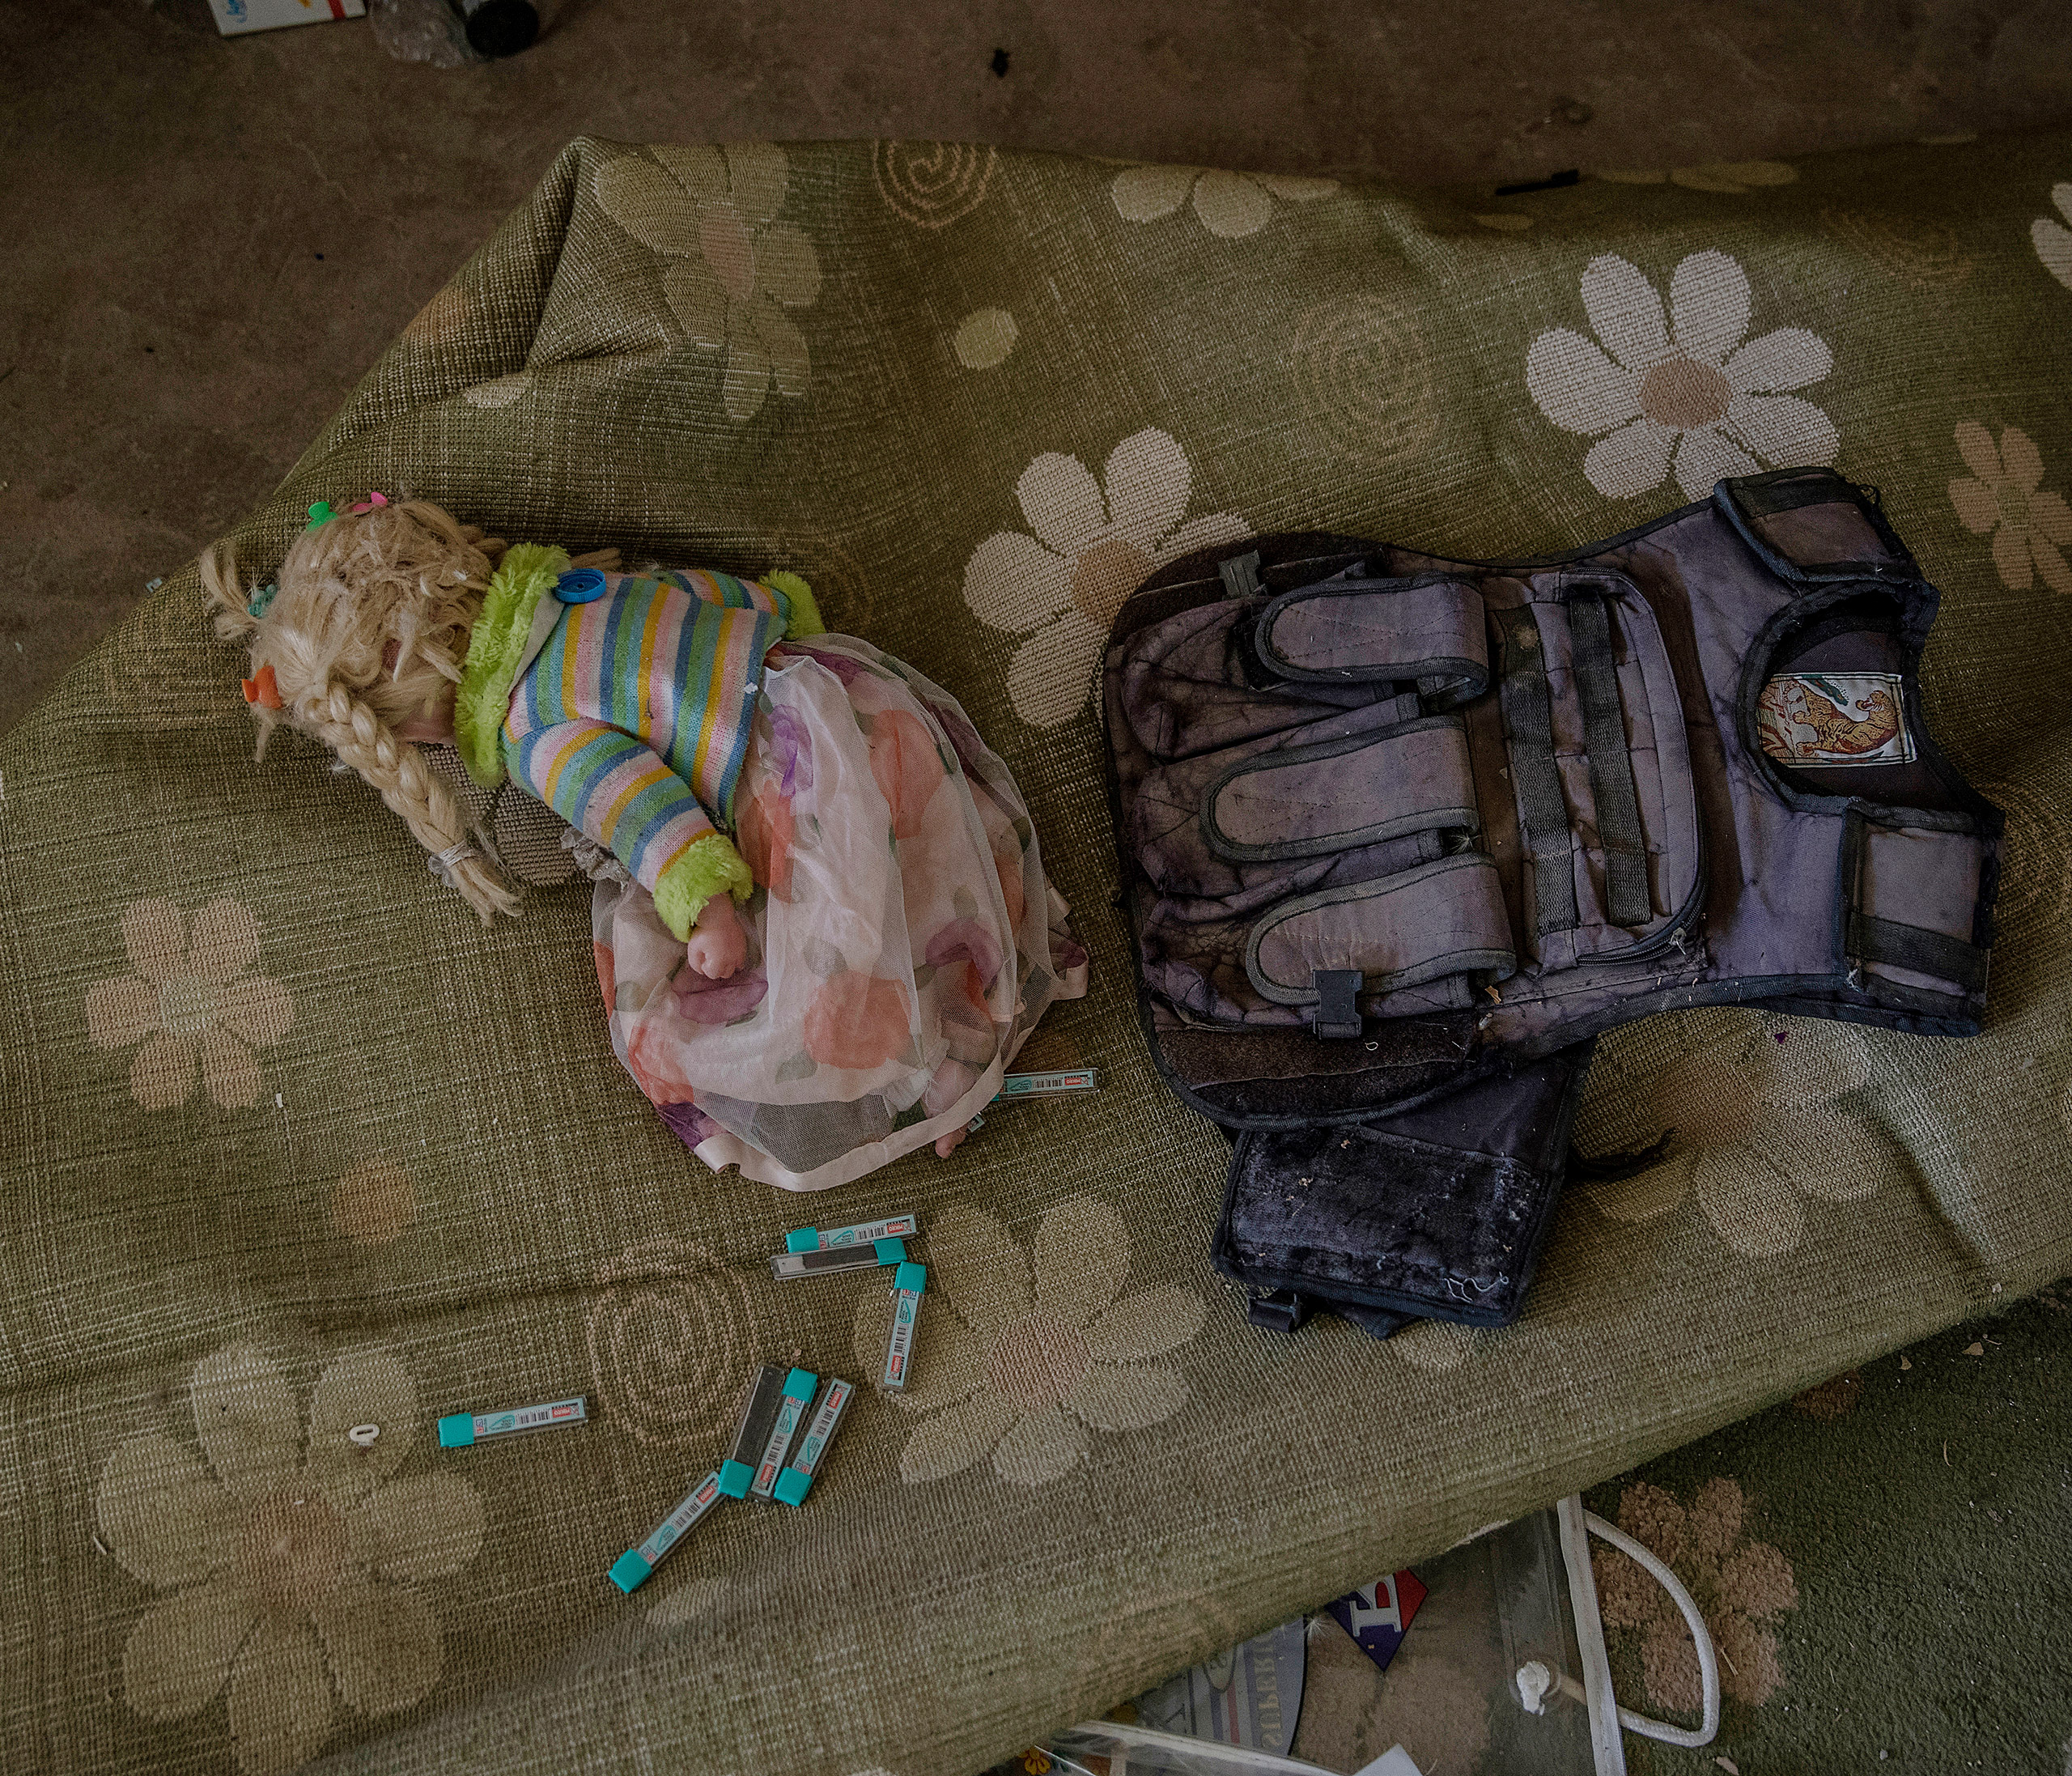 A doll and a fighter's vest found in a house once occupied by ISIS in northern, Iraq, Oct. 2016.